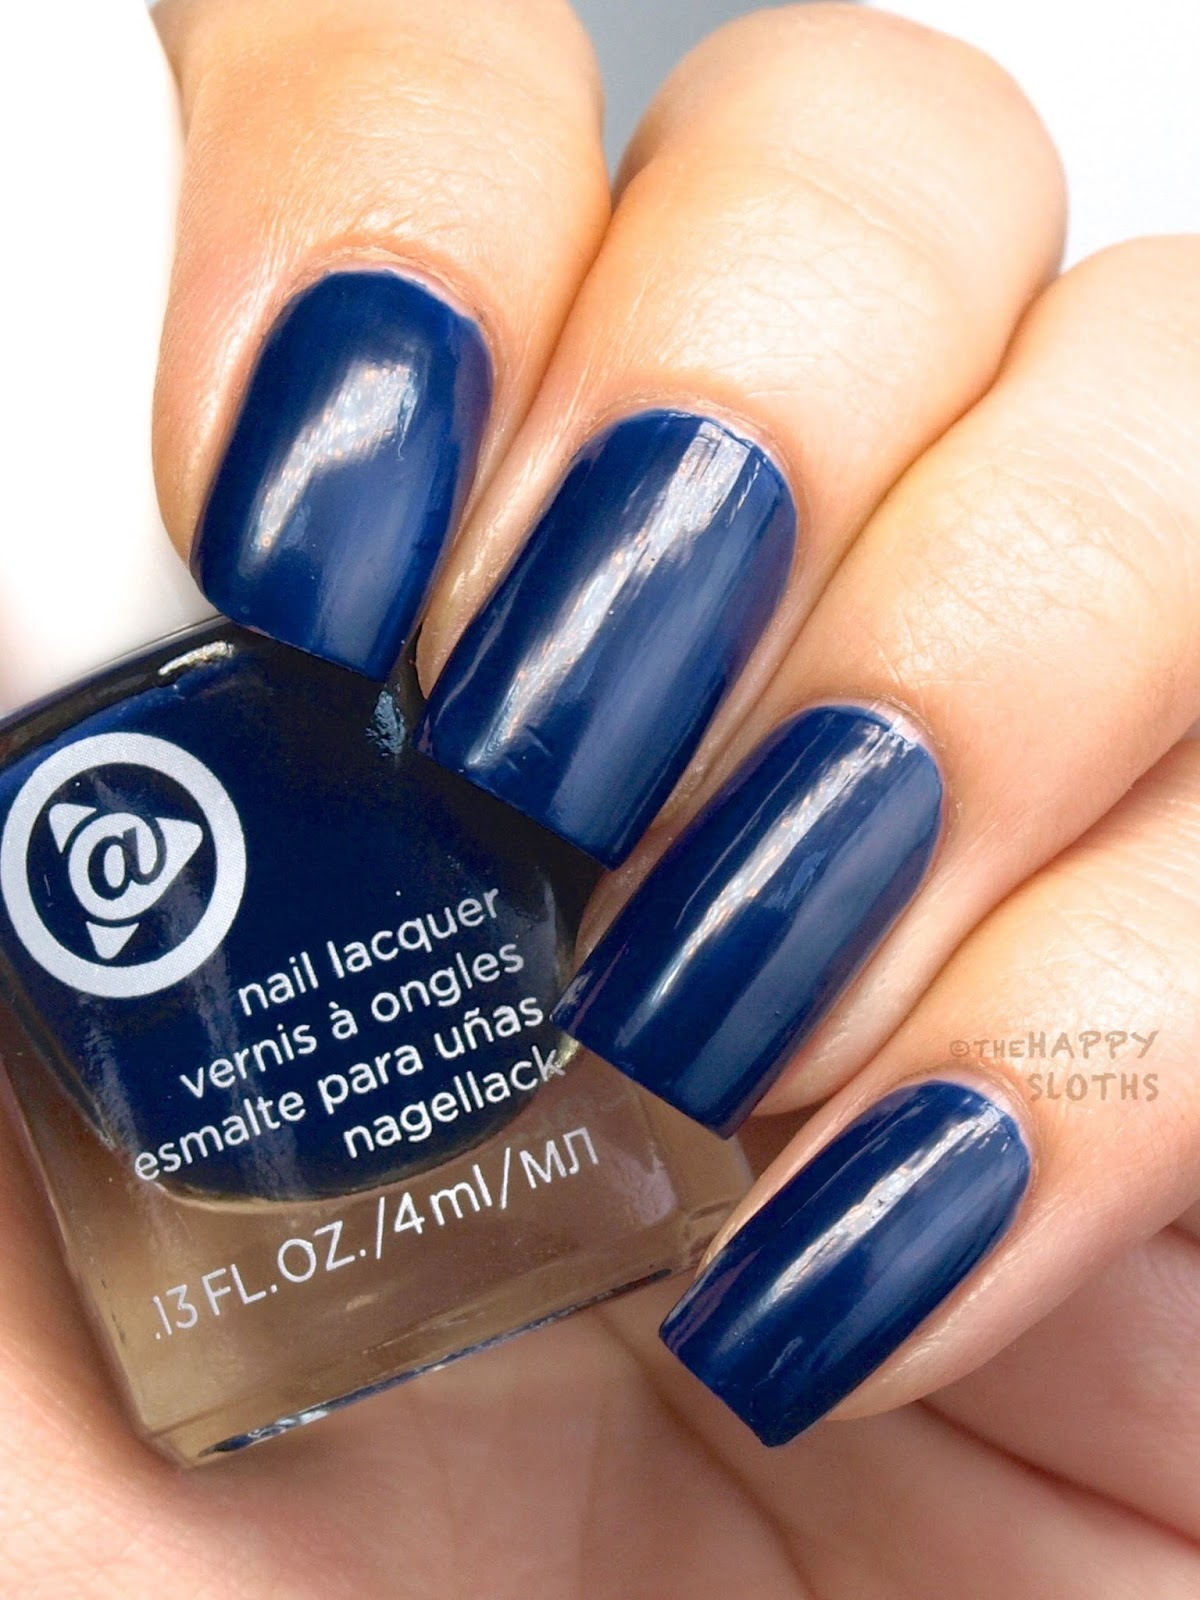 Mary Kay At Play Hail to the Nails Mini Nail Lacquer Trio: Review and Swatches Inky Blue